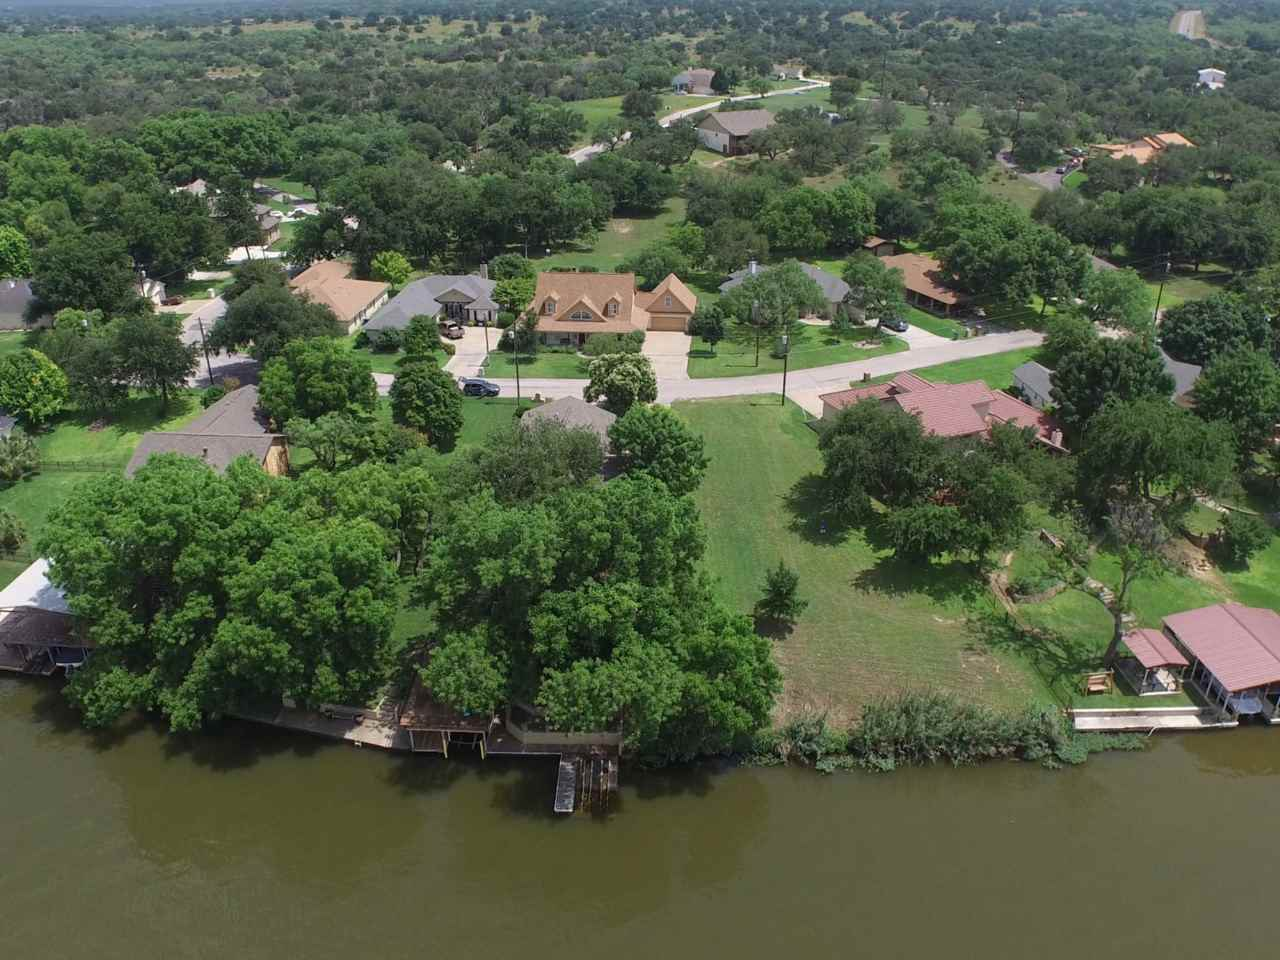 Land for Sale at 12 & 13 Bridgepoint Kingsland, Texas 78639 United States